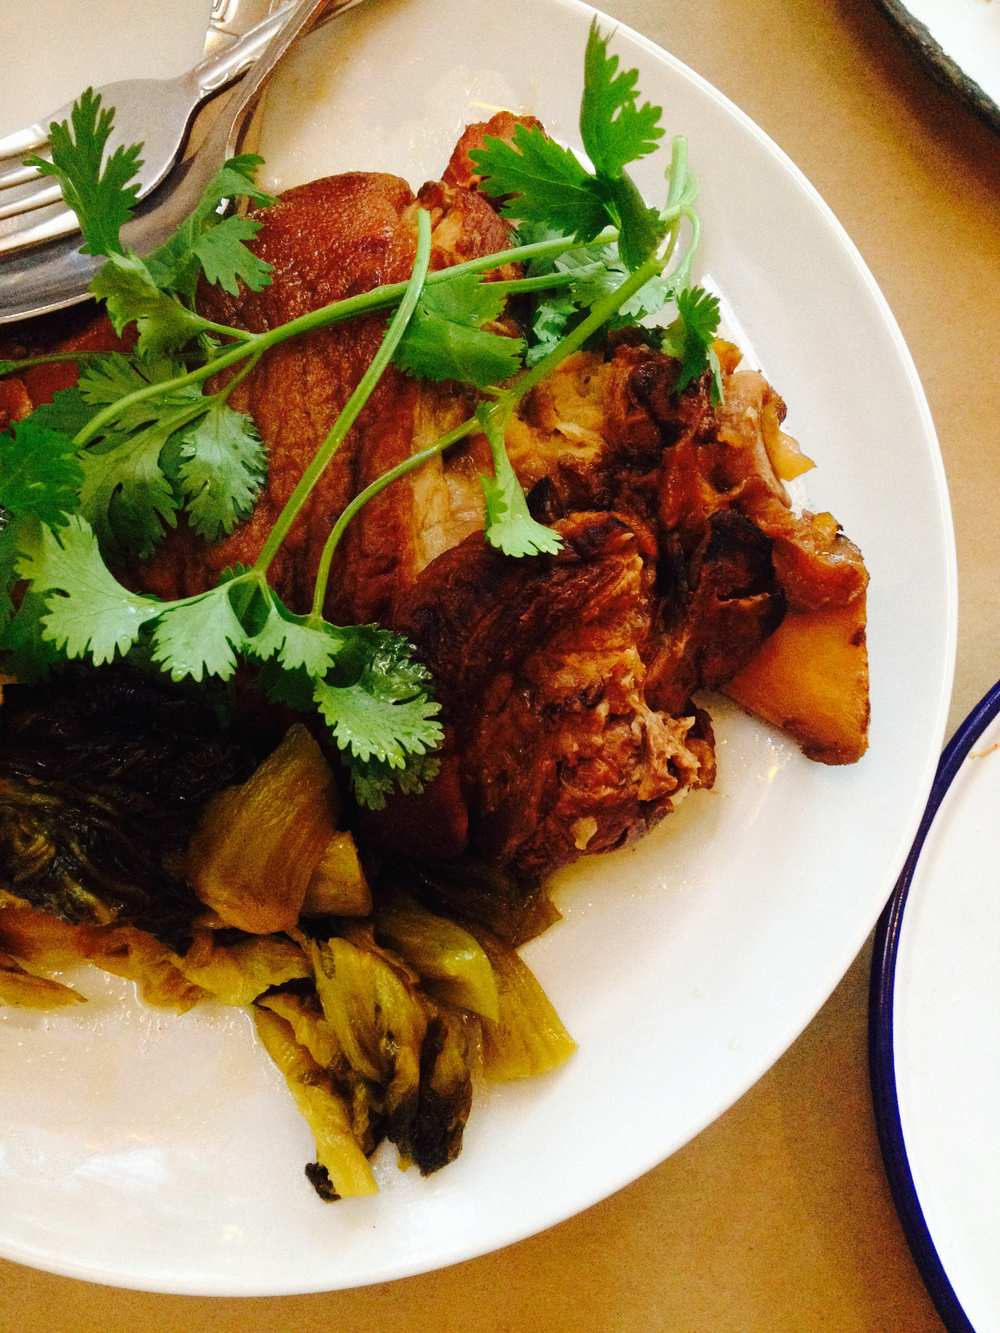 """kar moo parlow, a whole braised pork hock with both skin and fat left on that has been slow-cooked with dark soy, five spice, garlic (as the restaurant states on its menu, """"very rich, very good"""")"""